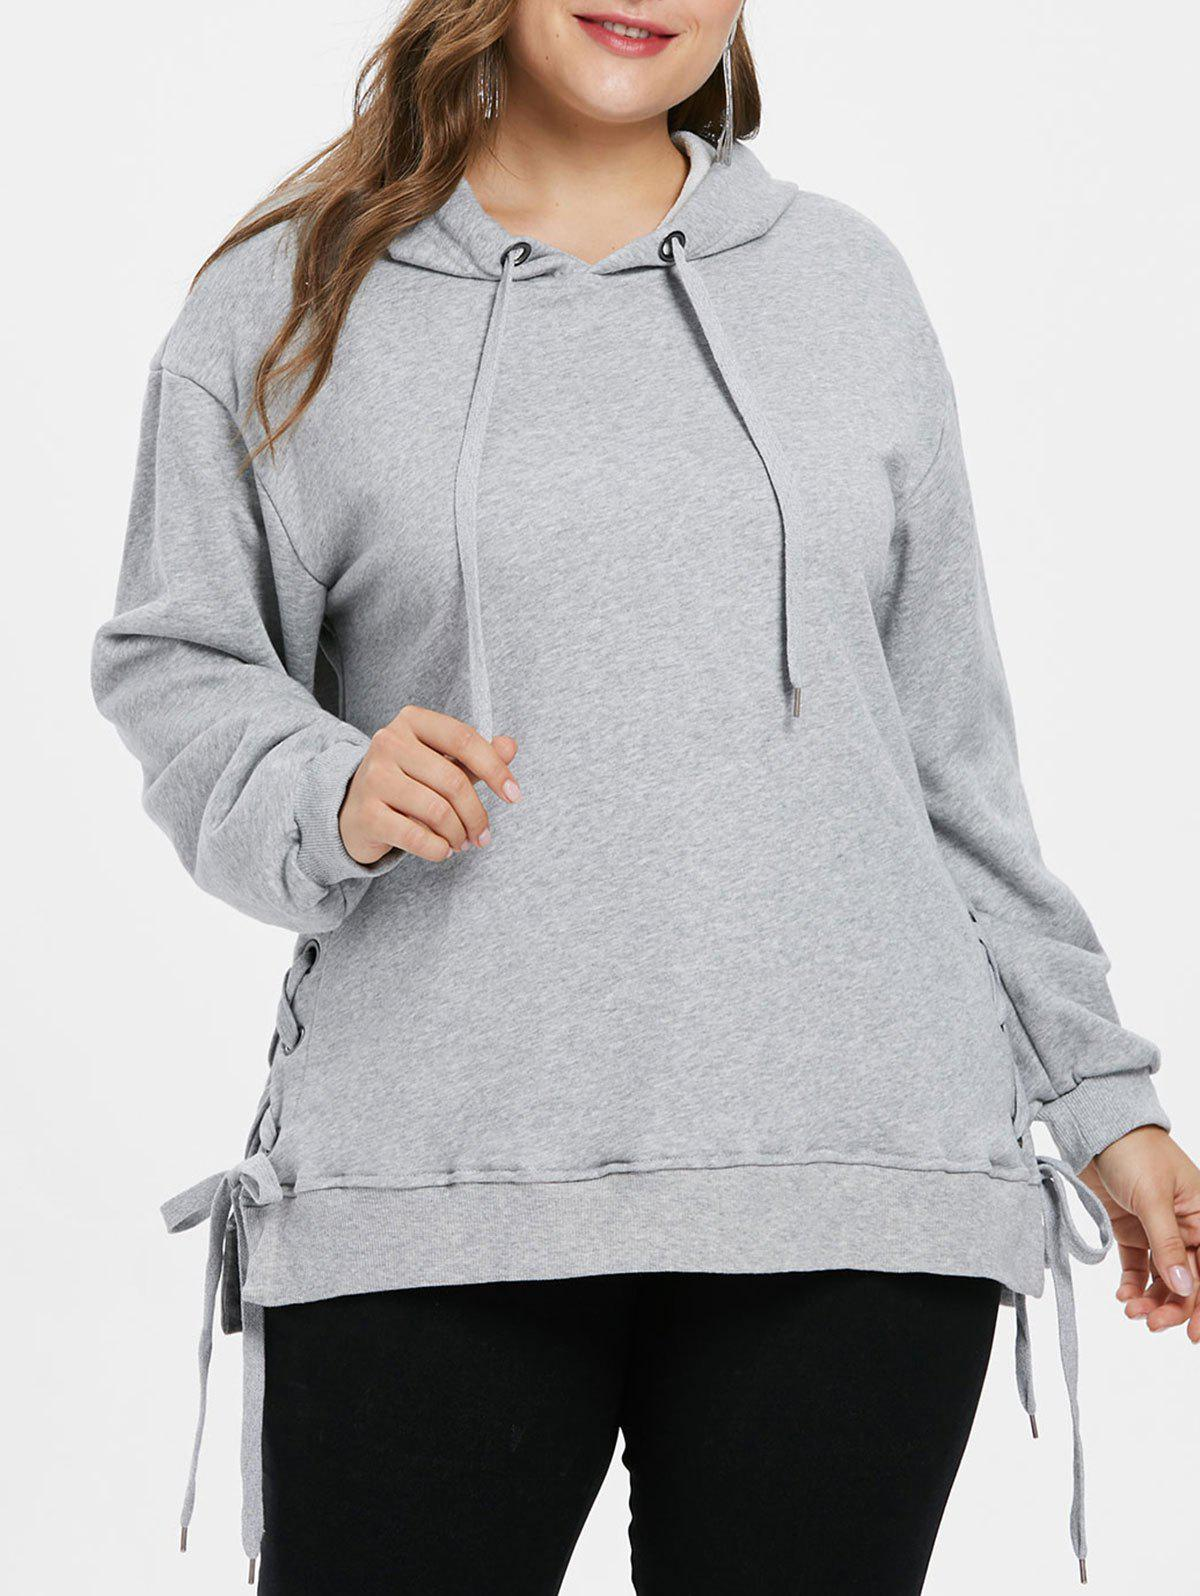 Plus Size Criss Cross Long Hoodie - GRAY L